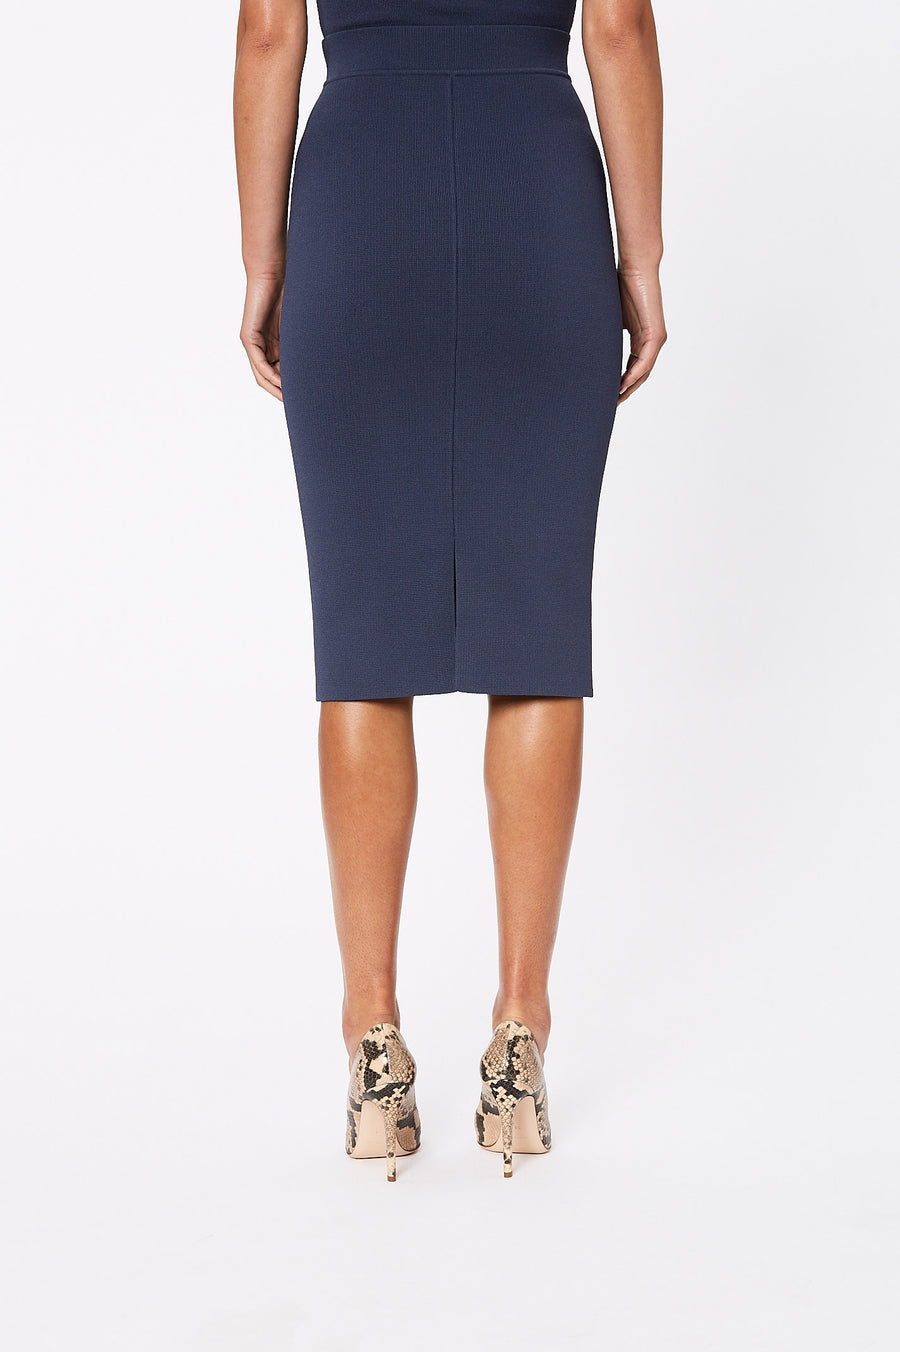 Crepe Knit Slit Back Skirt Slate - Scanlan Theodore